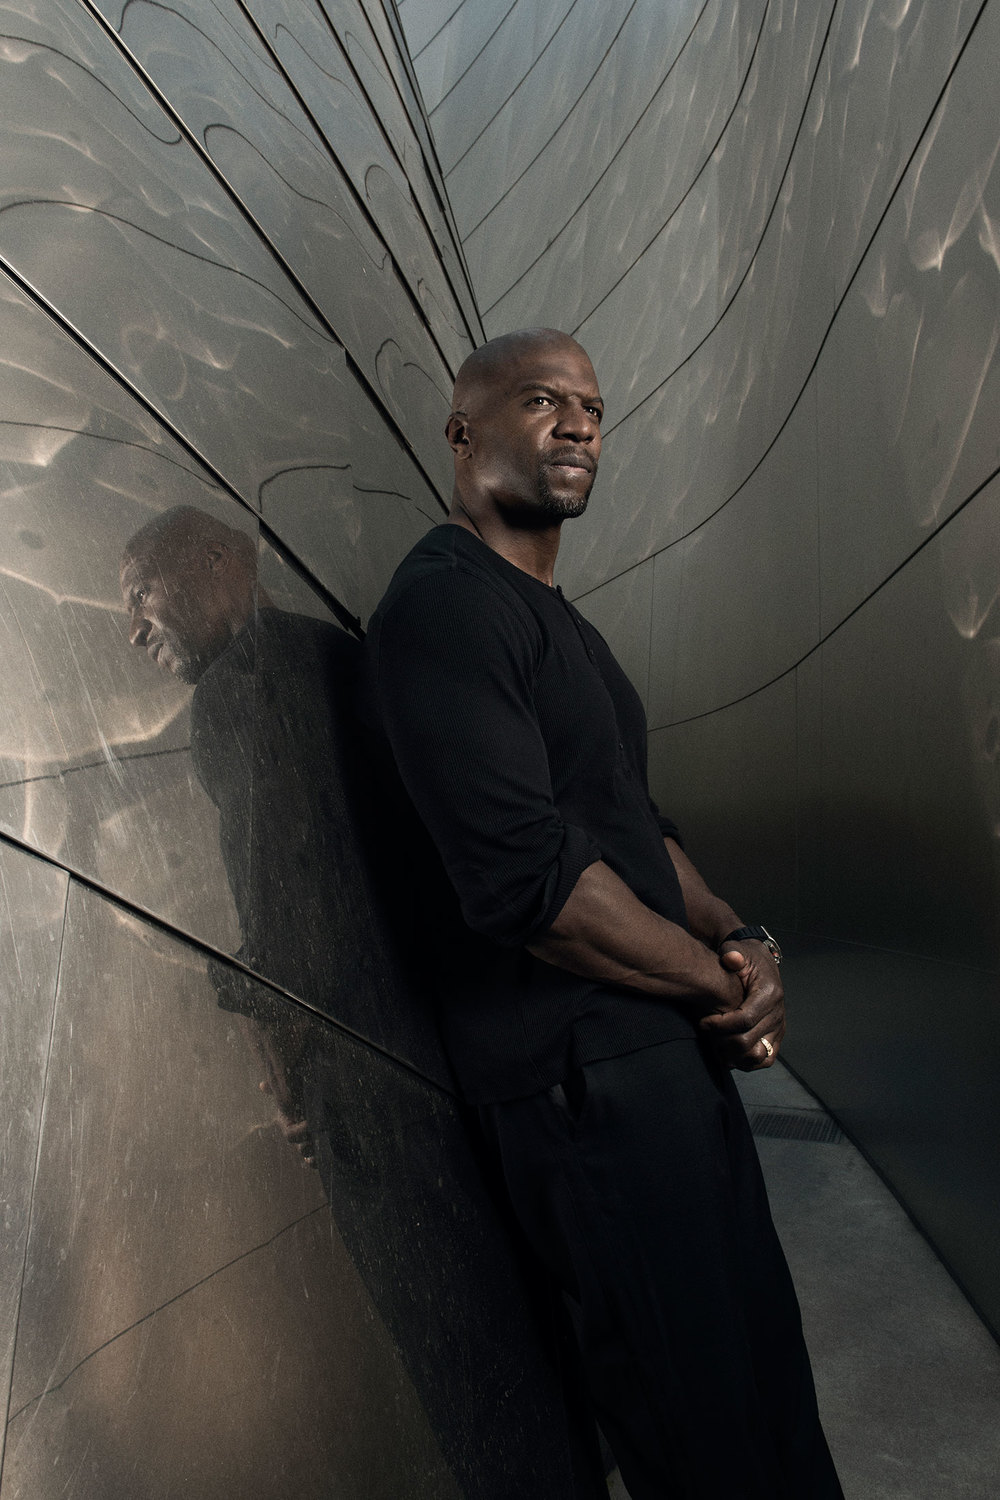 Terry Crews at the Frank Gehry-designed Walt Disney Concert Hall in Downtown Los Angeles. (Photo: Luke Fontana/Surface)